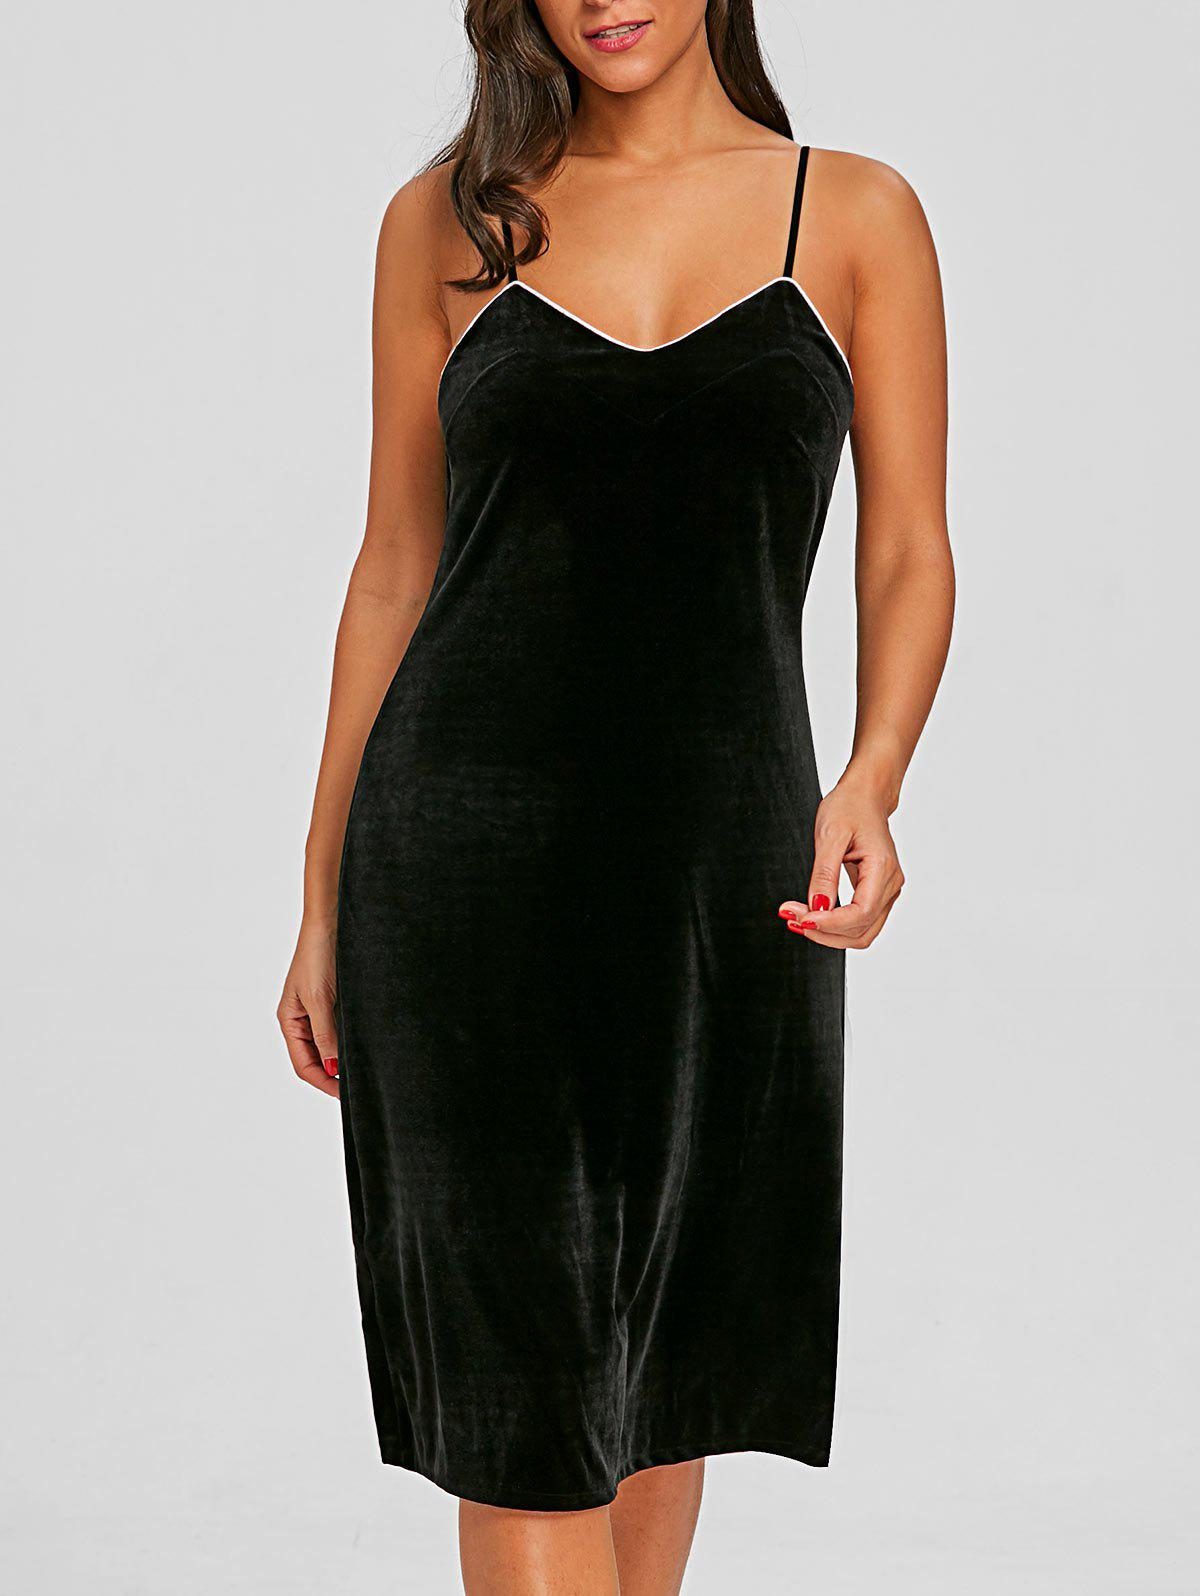 Store Velvet Lingerie Slip Dress